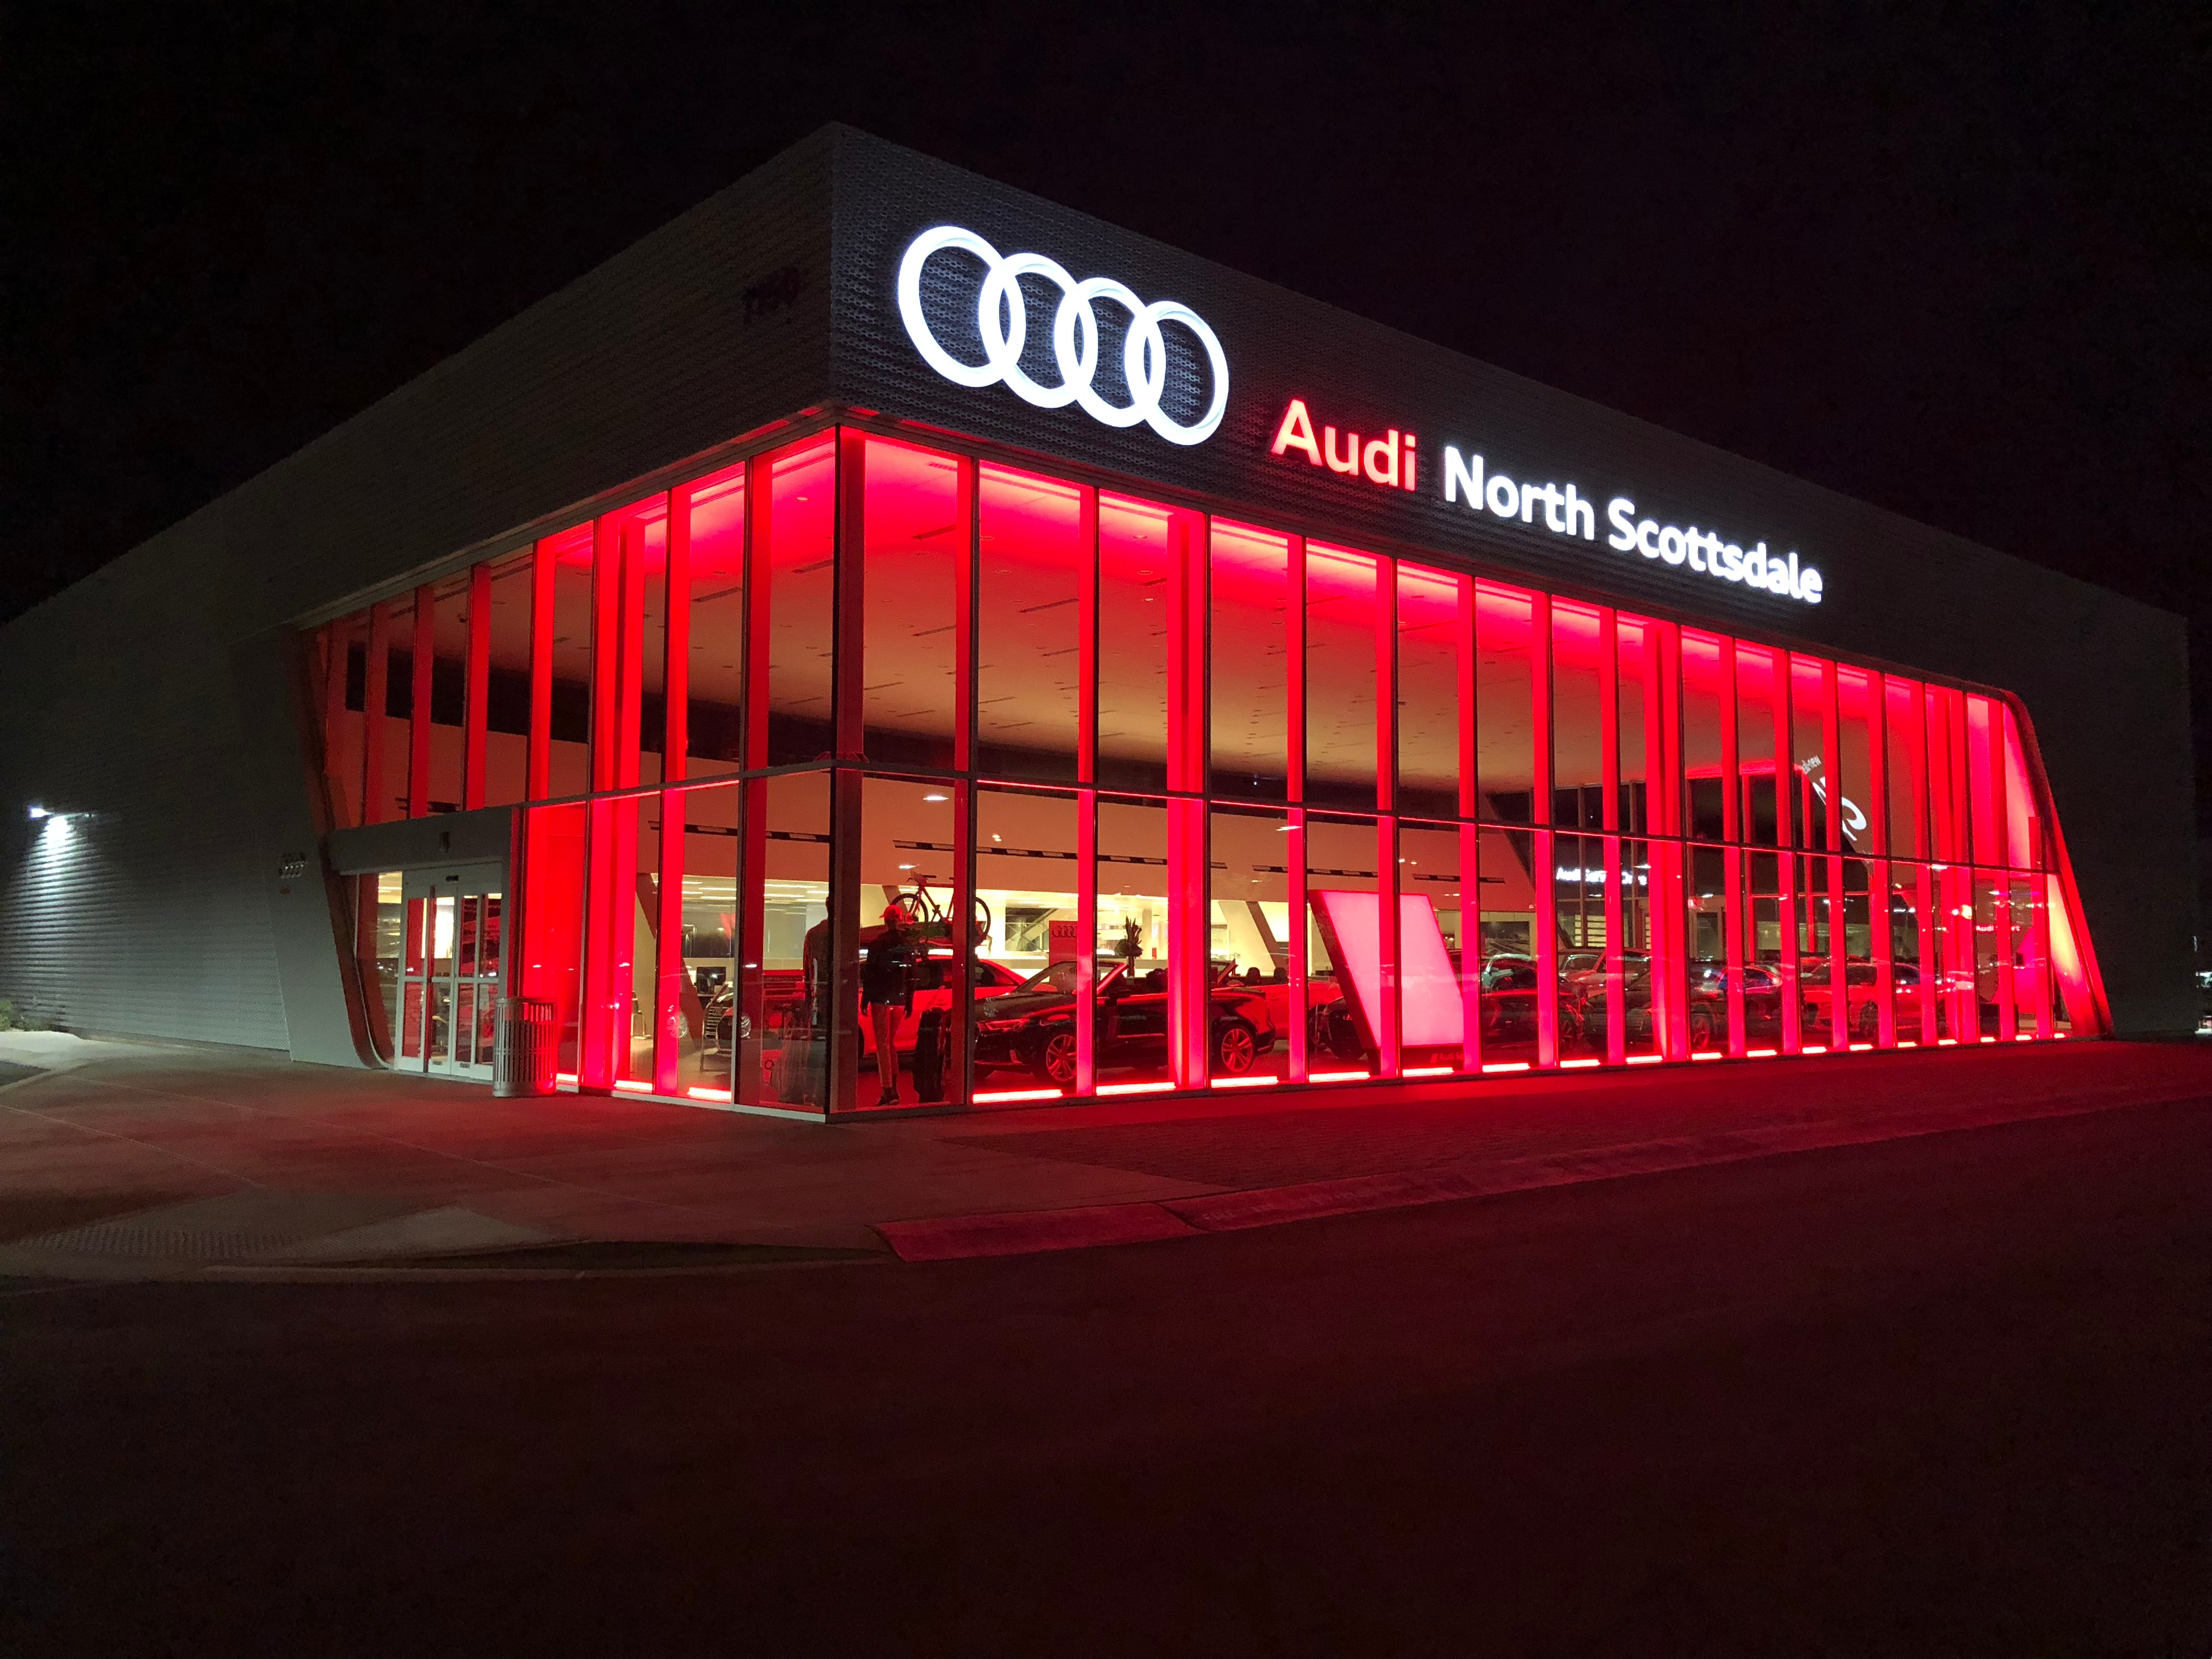 Contact Us At Audi North Scottsdale Serving Phoenix Tempe - Audi north scottsdale service